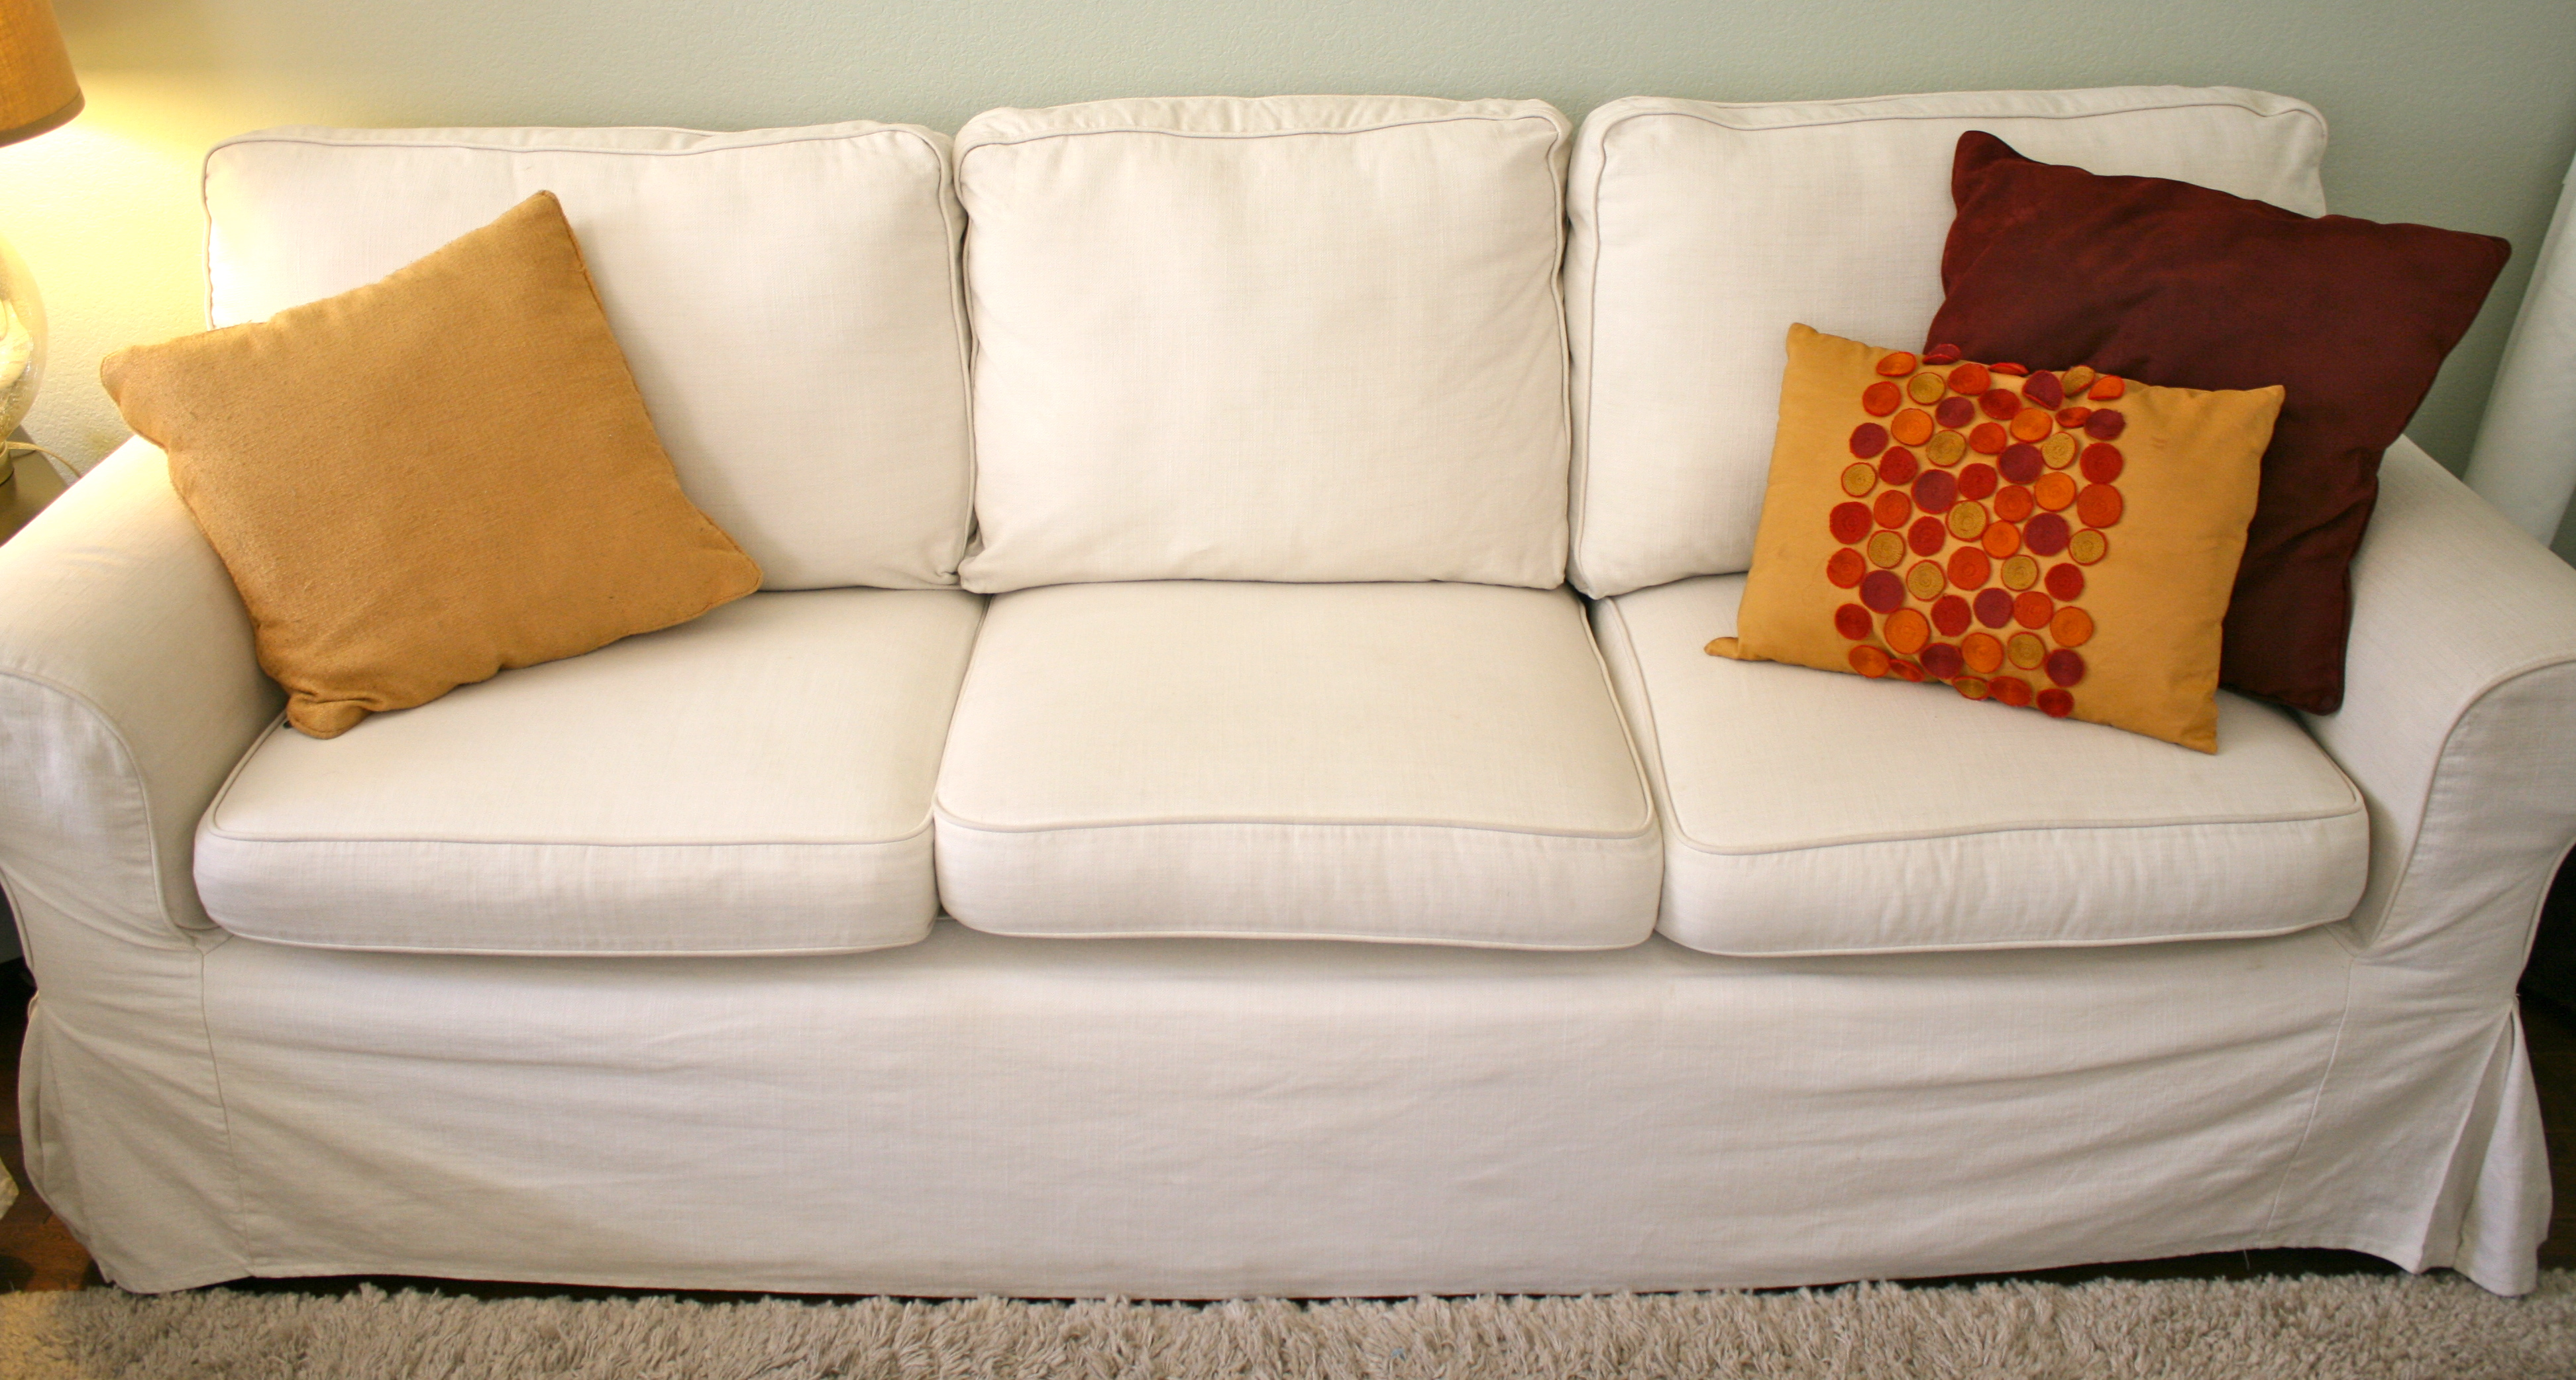 Here's How to Make Your Sagging Couch Cushions Look Plump Again!1